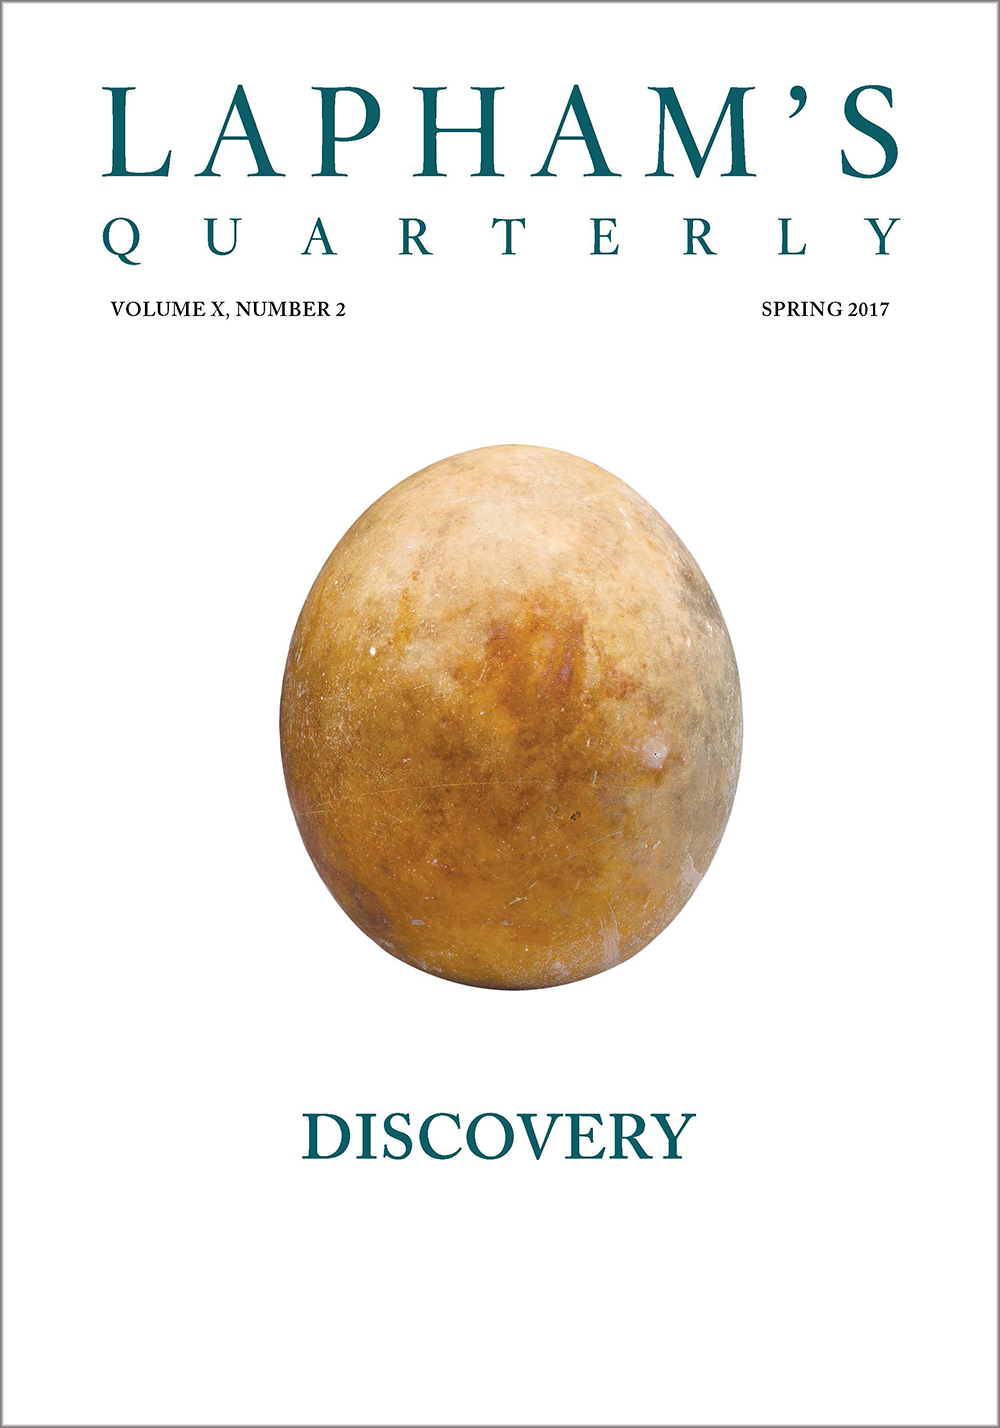 Discovery, the Spring 2017 issue of Lapham's Quarterly.